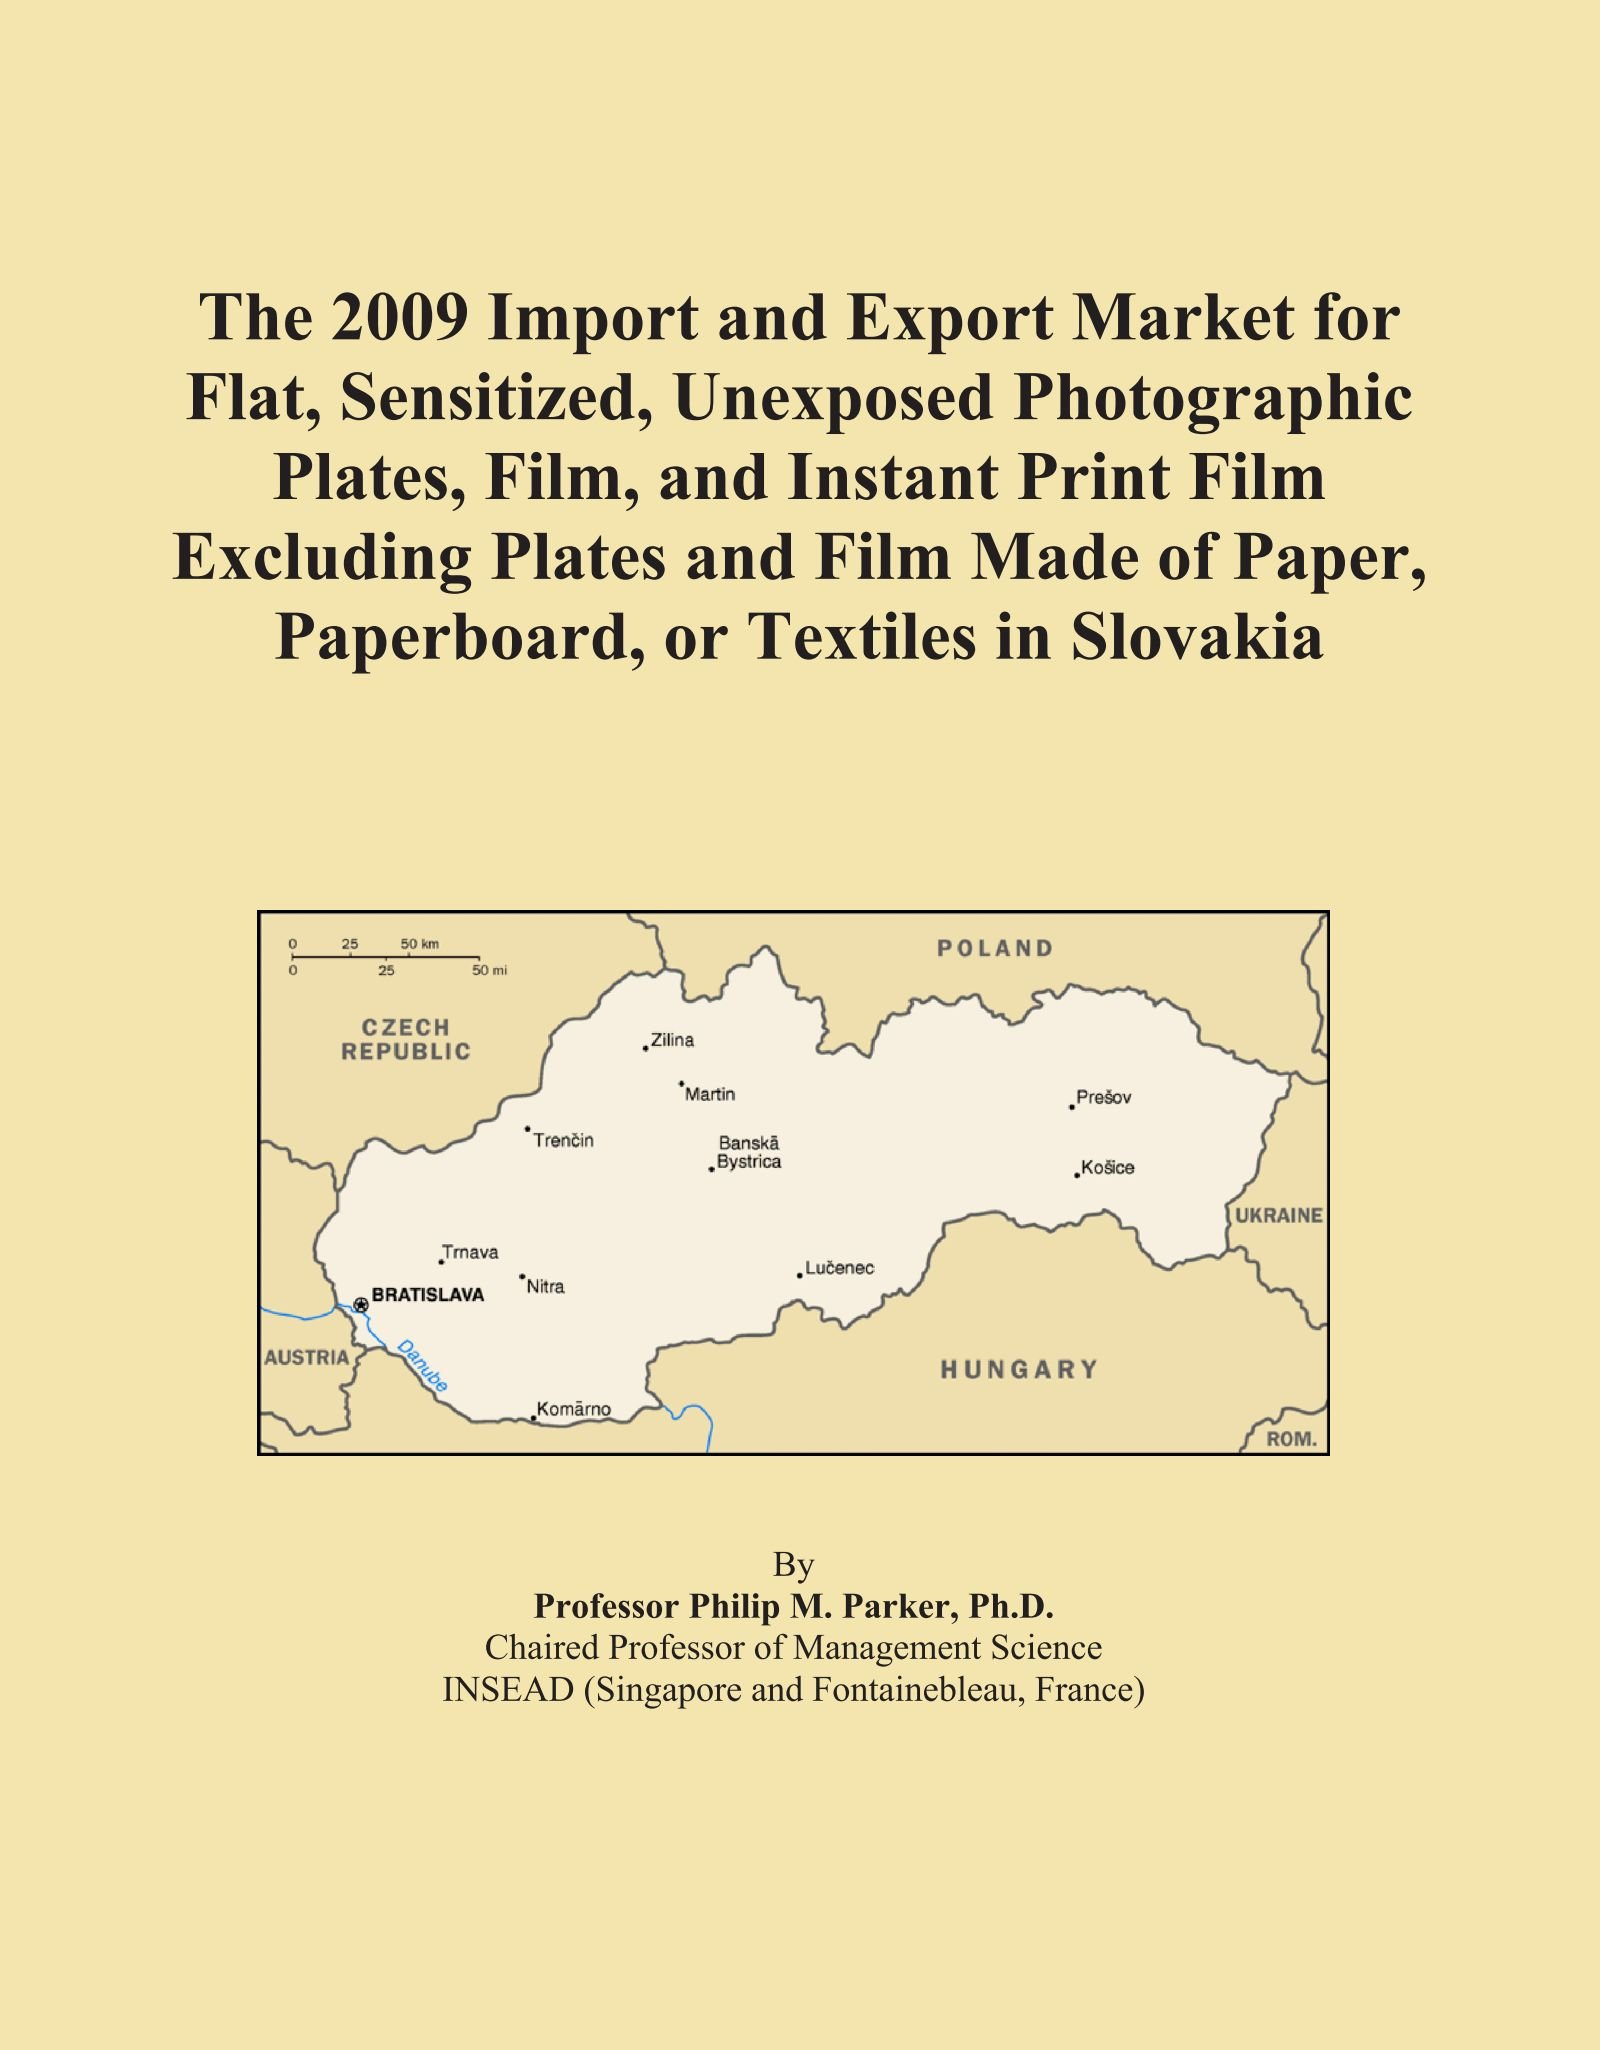 The 2009 Import and Export Market for Flat, Sensitized, Unexposed Photographic Plates, Film, and Instant Print Film Excluding Plates and Film Made of Paper, Paperboard, or Textiles in Slovakia pdf